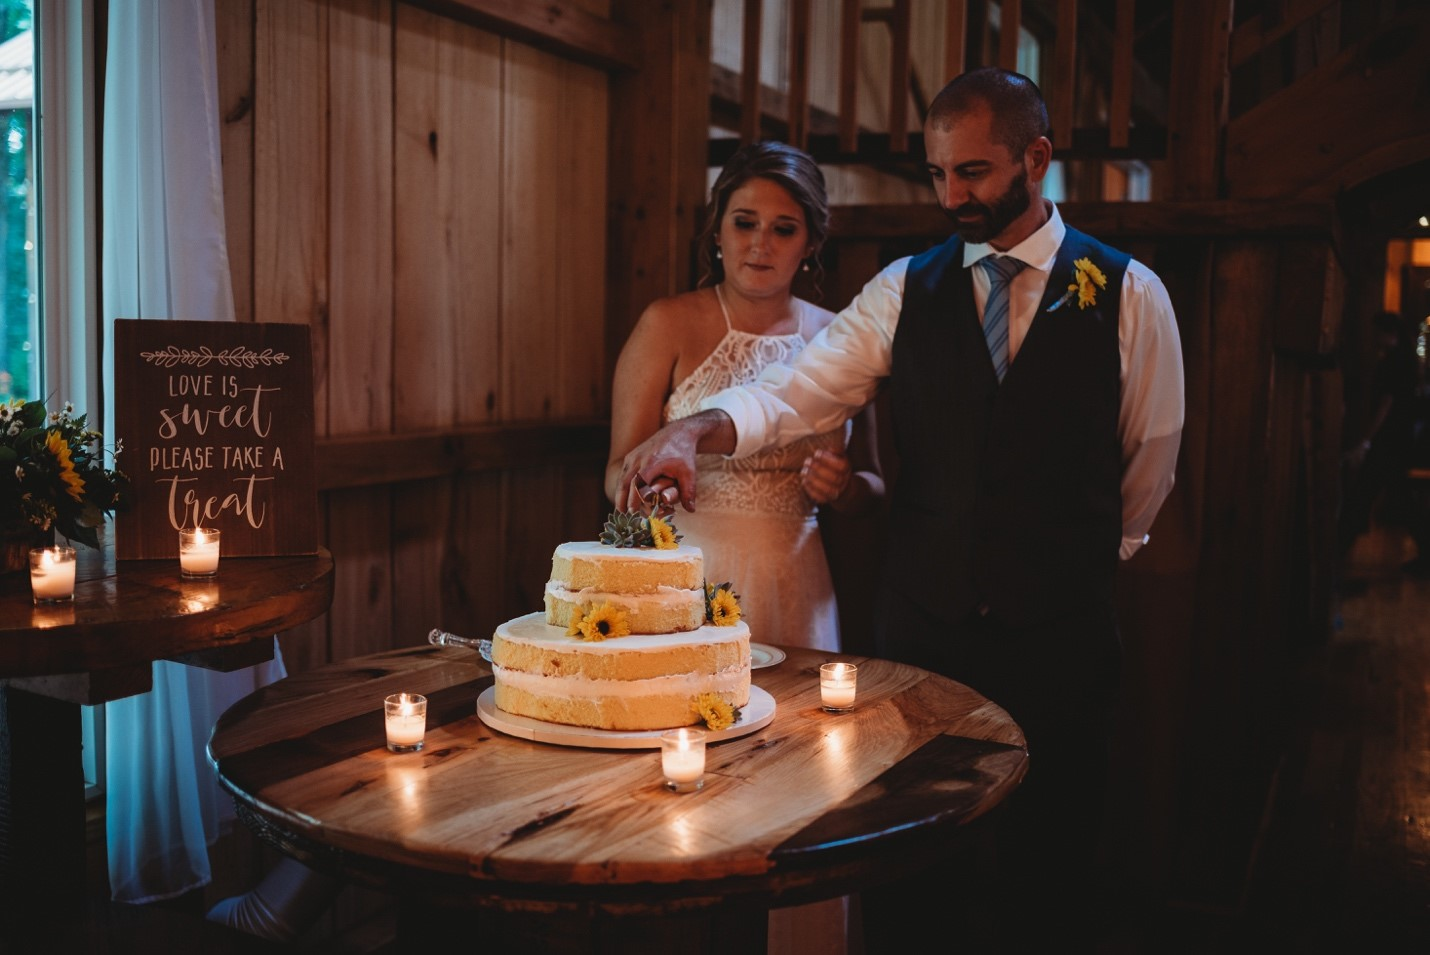 Cake Cutting | Photo by: Cassie Lee Photography